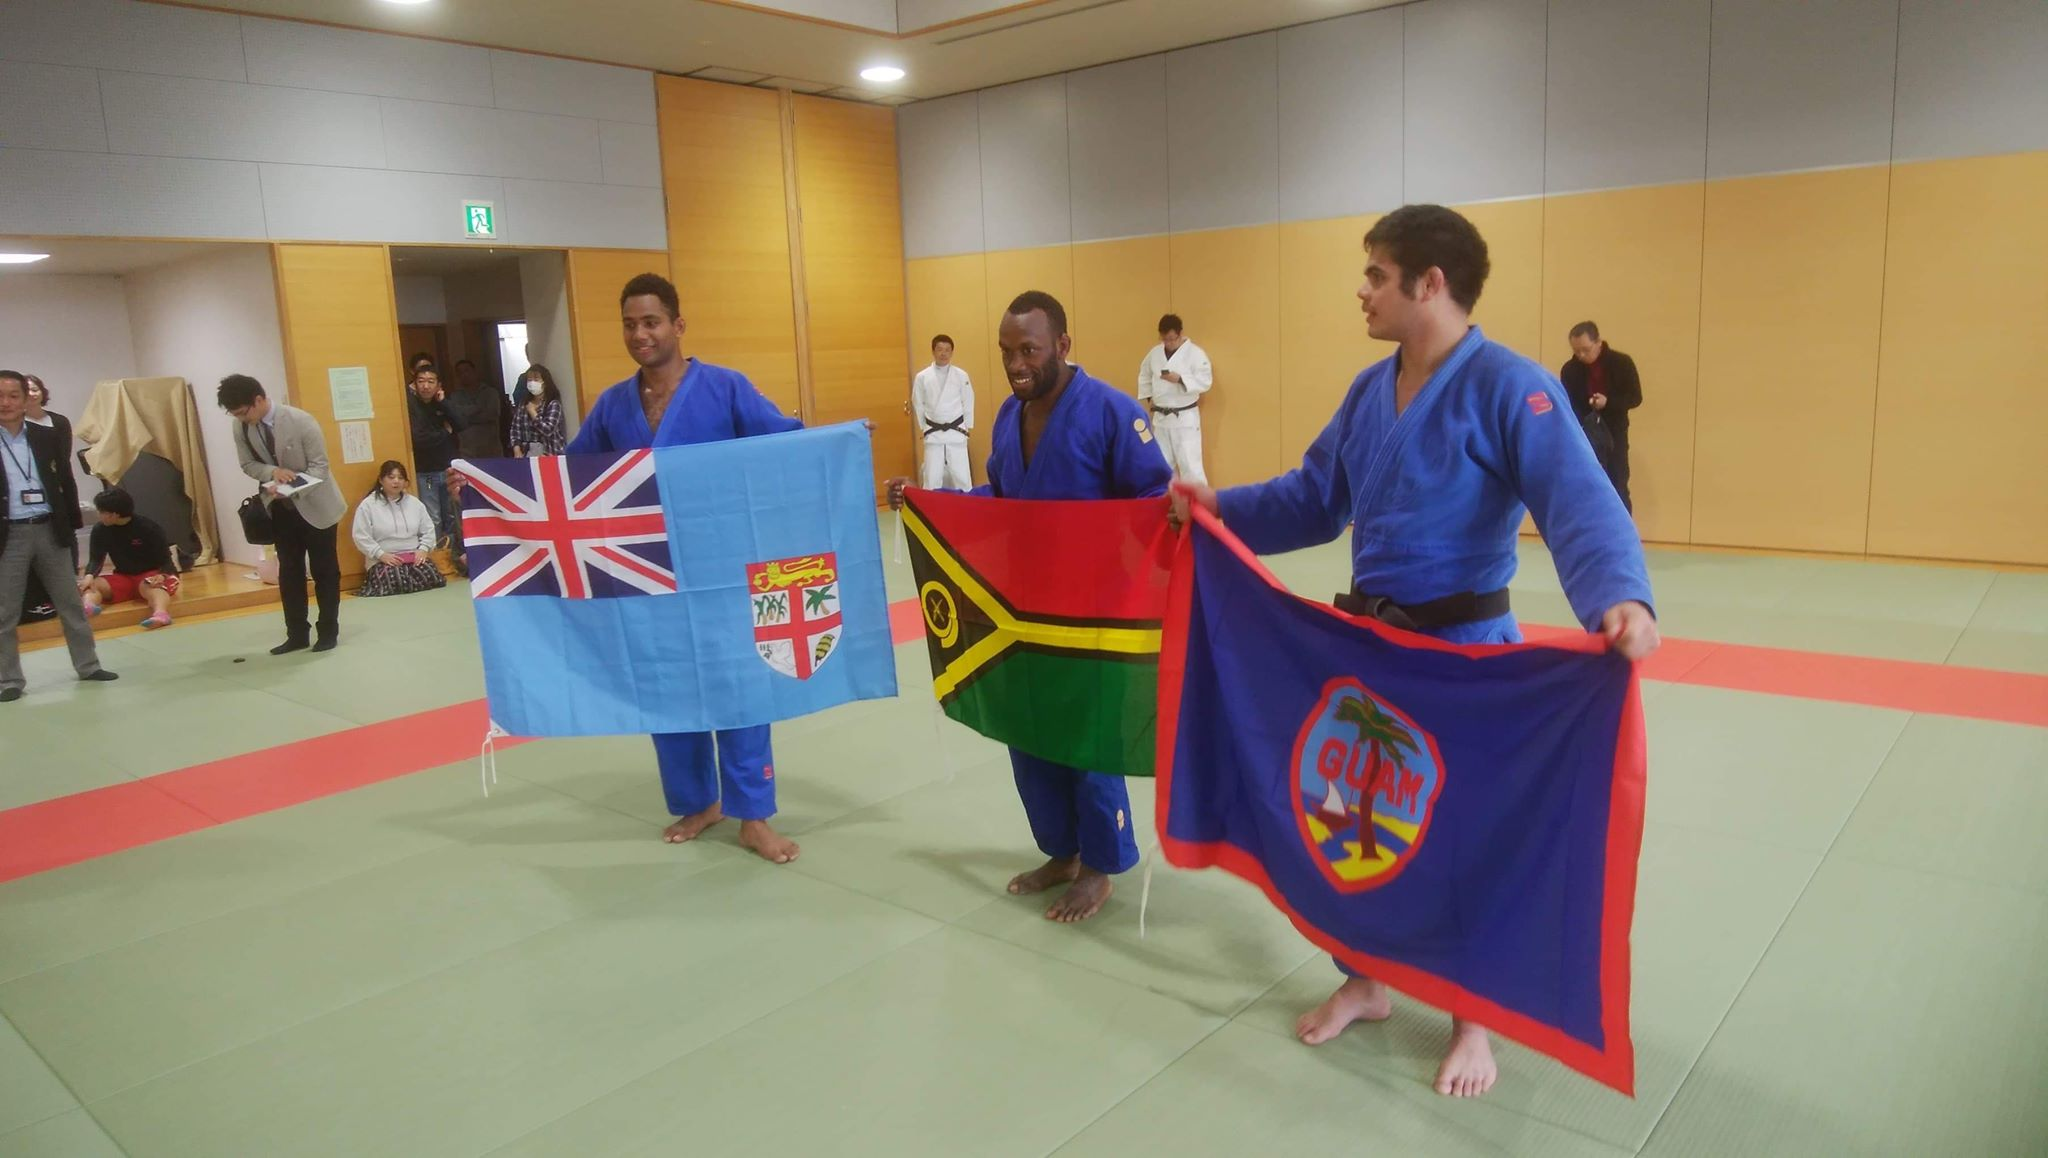 Joe Mahit and the Oceania Team arrived for training in Japan